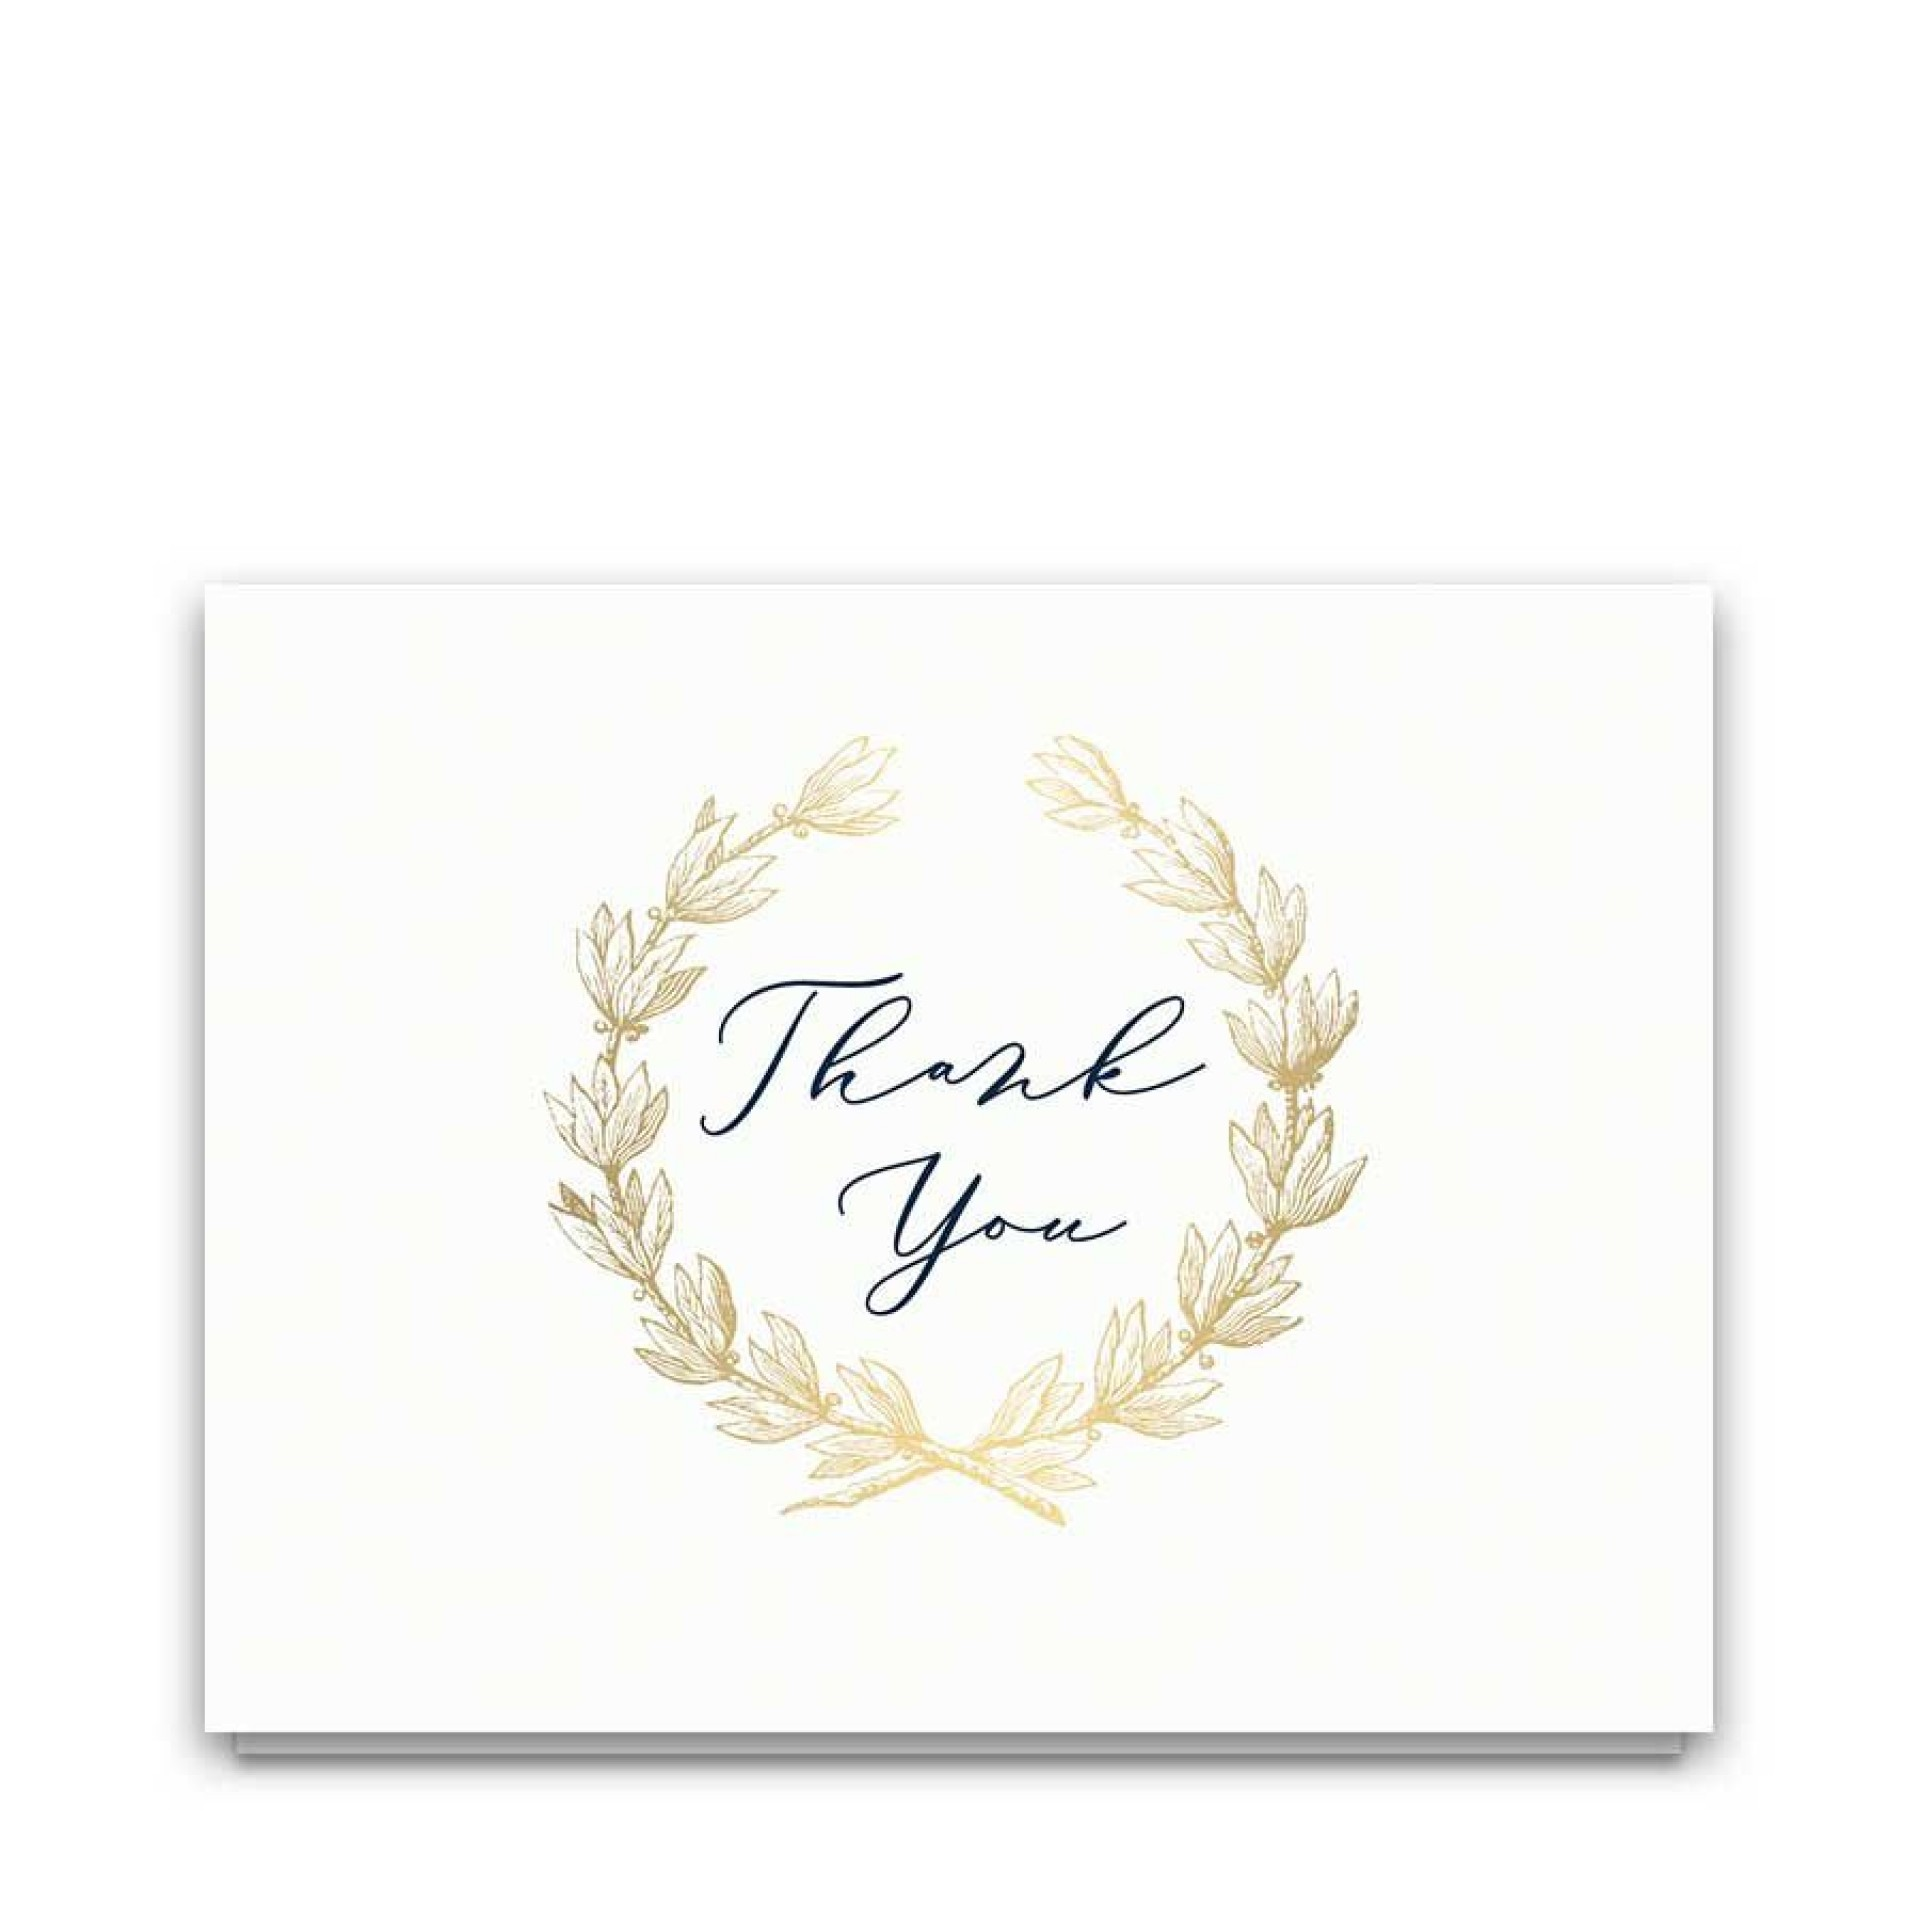 009 Stupendou Thank You Card Template Inspiration  Wedding Busines Word Free1920